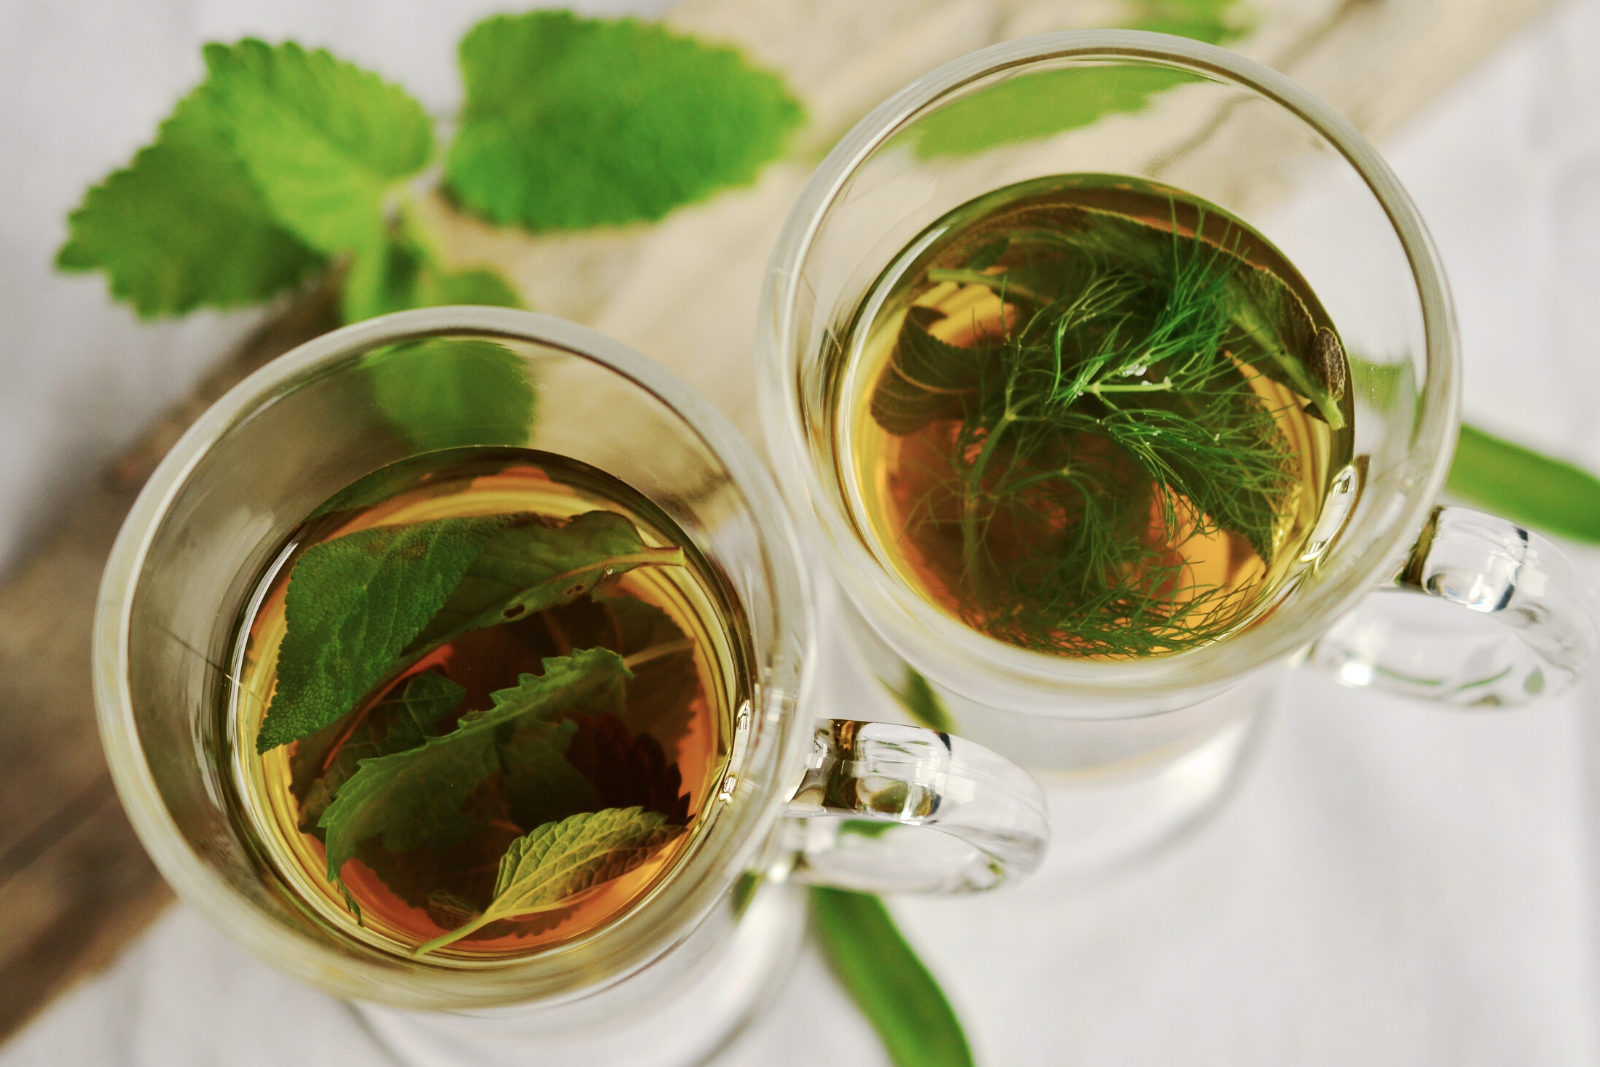 Two Cups Of Tea | 10 Underrated Effects Of Drinking Tea